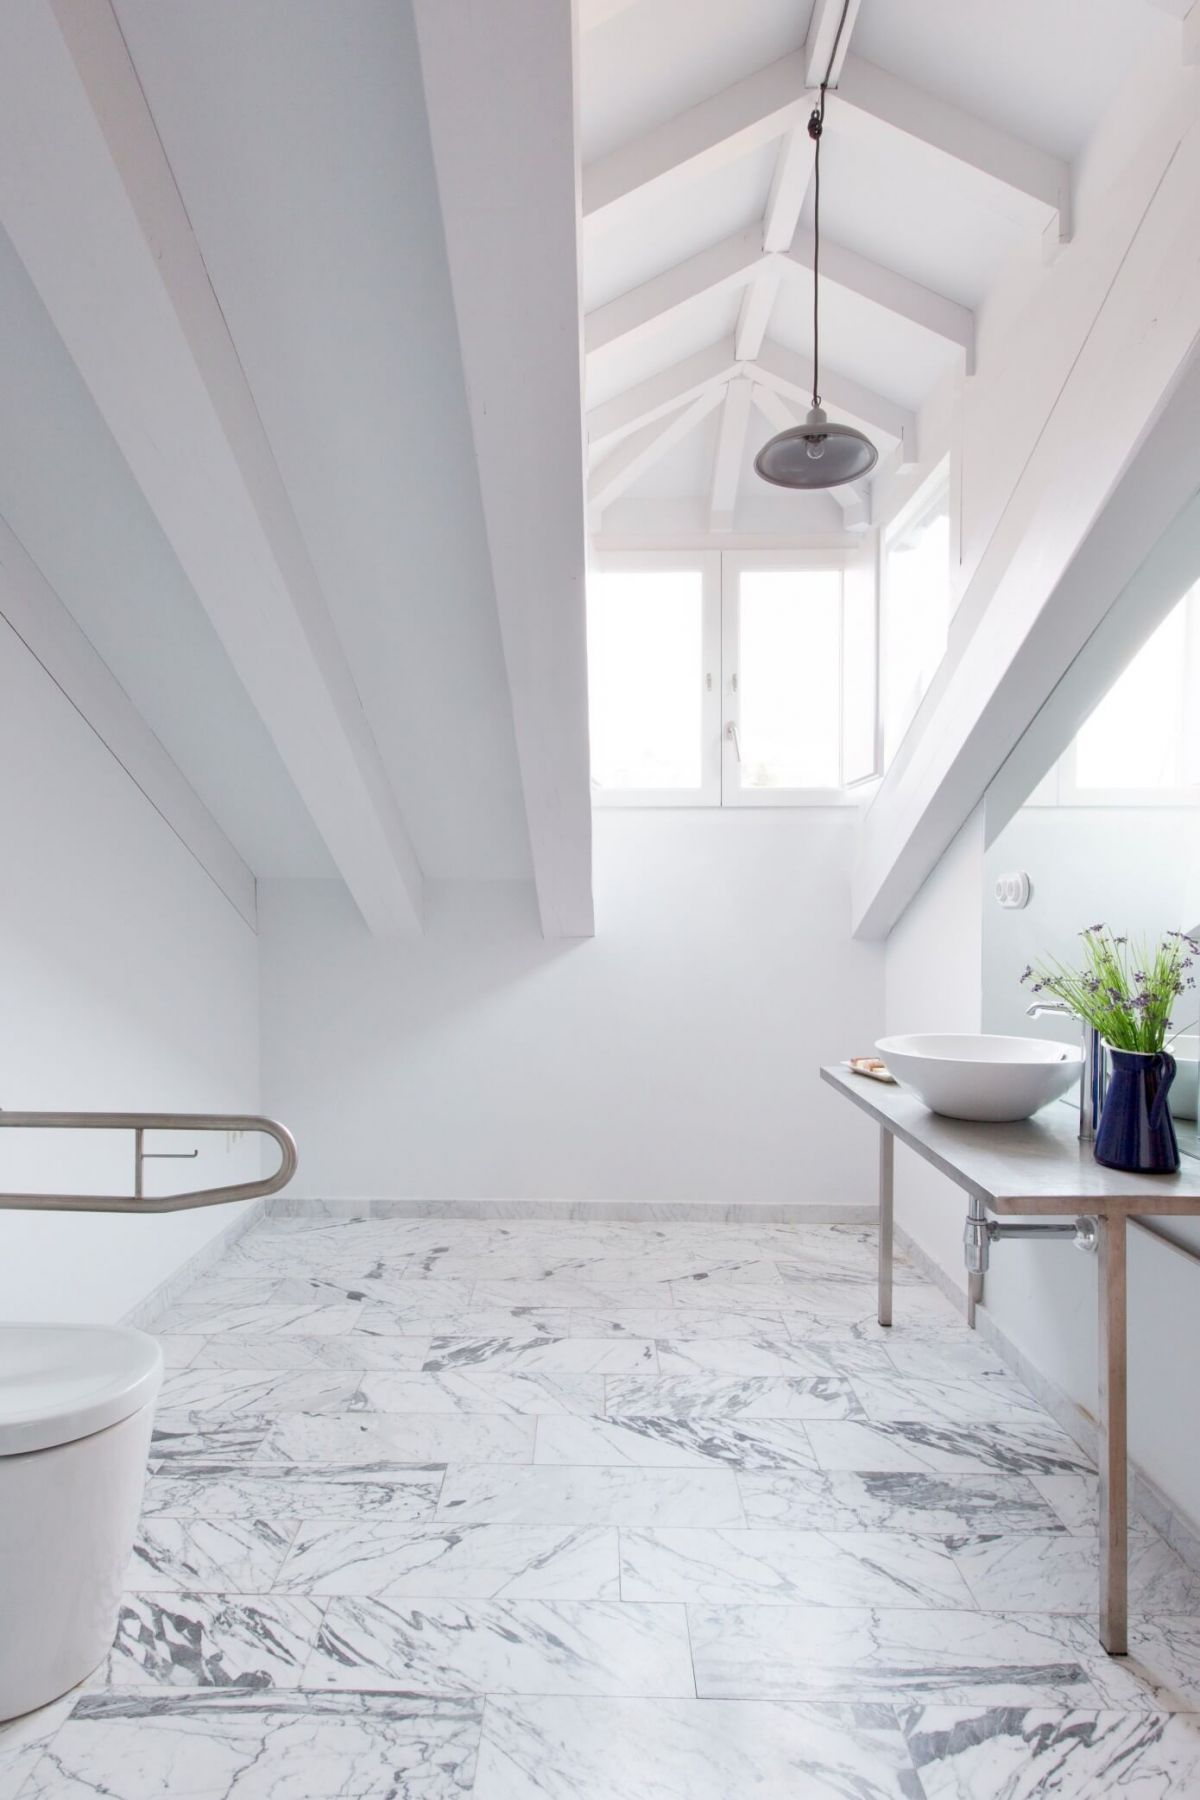 A contemporary reconstruction of the Hotel in rustic style. White bathroom interior